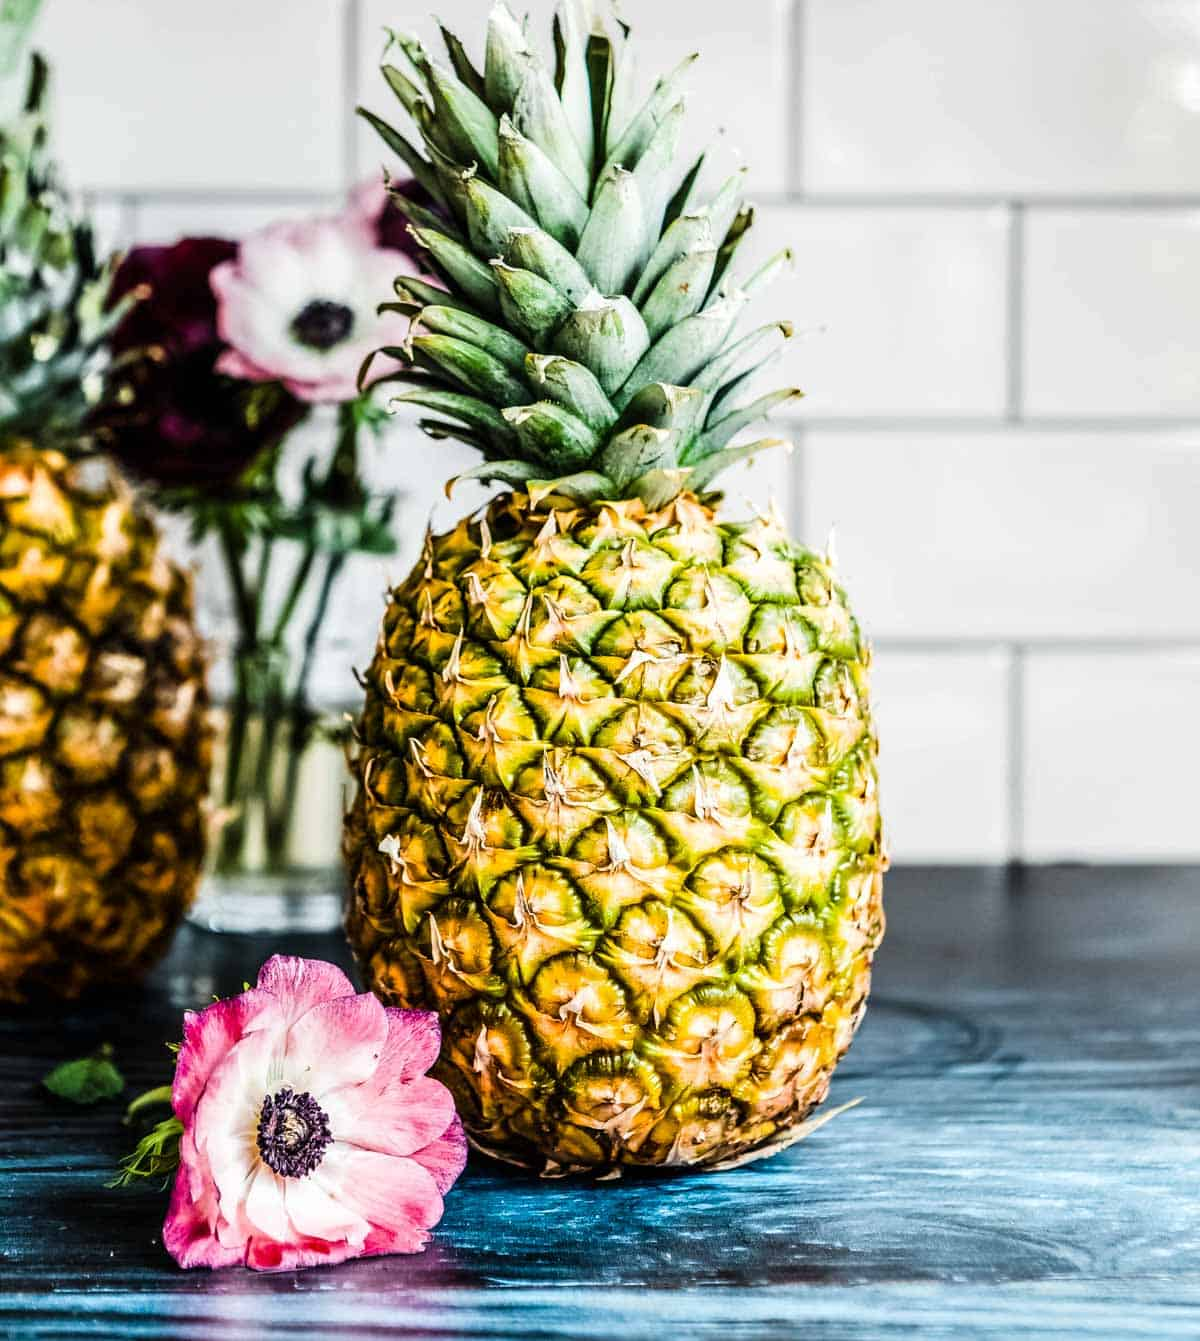 pineapples are rich in vitamin C